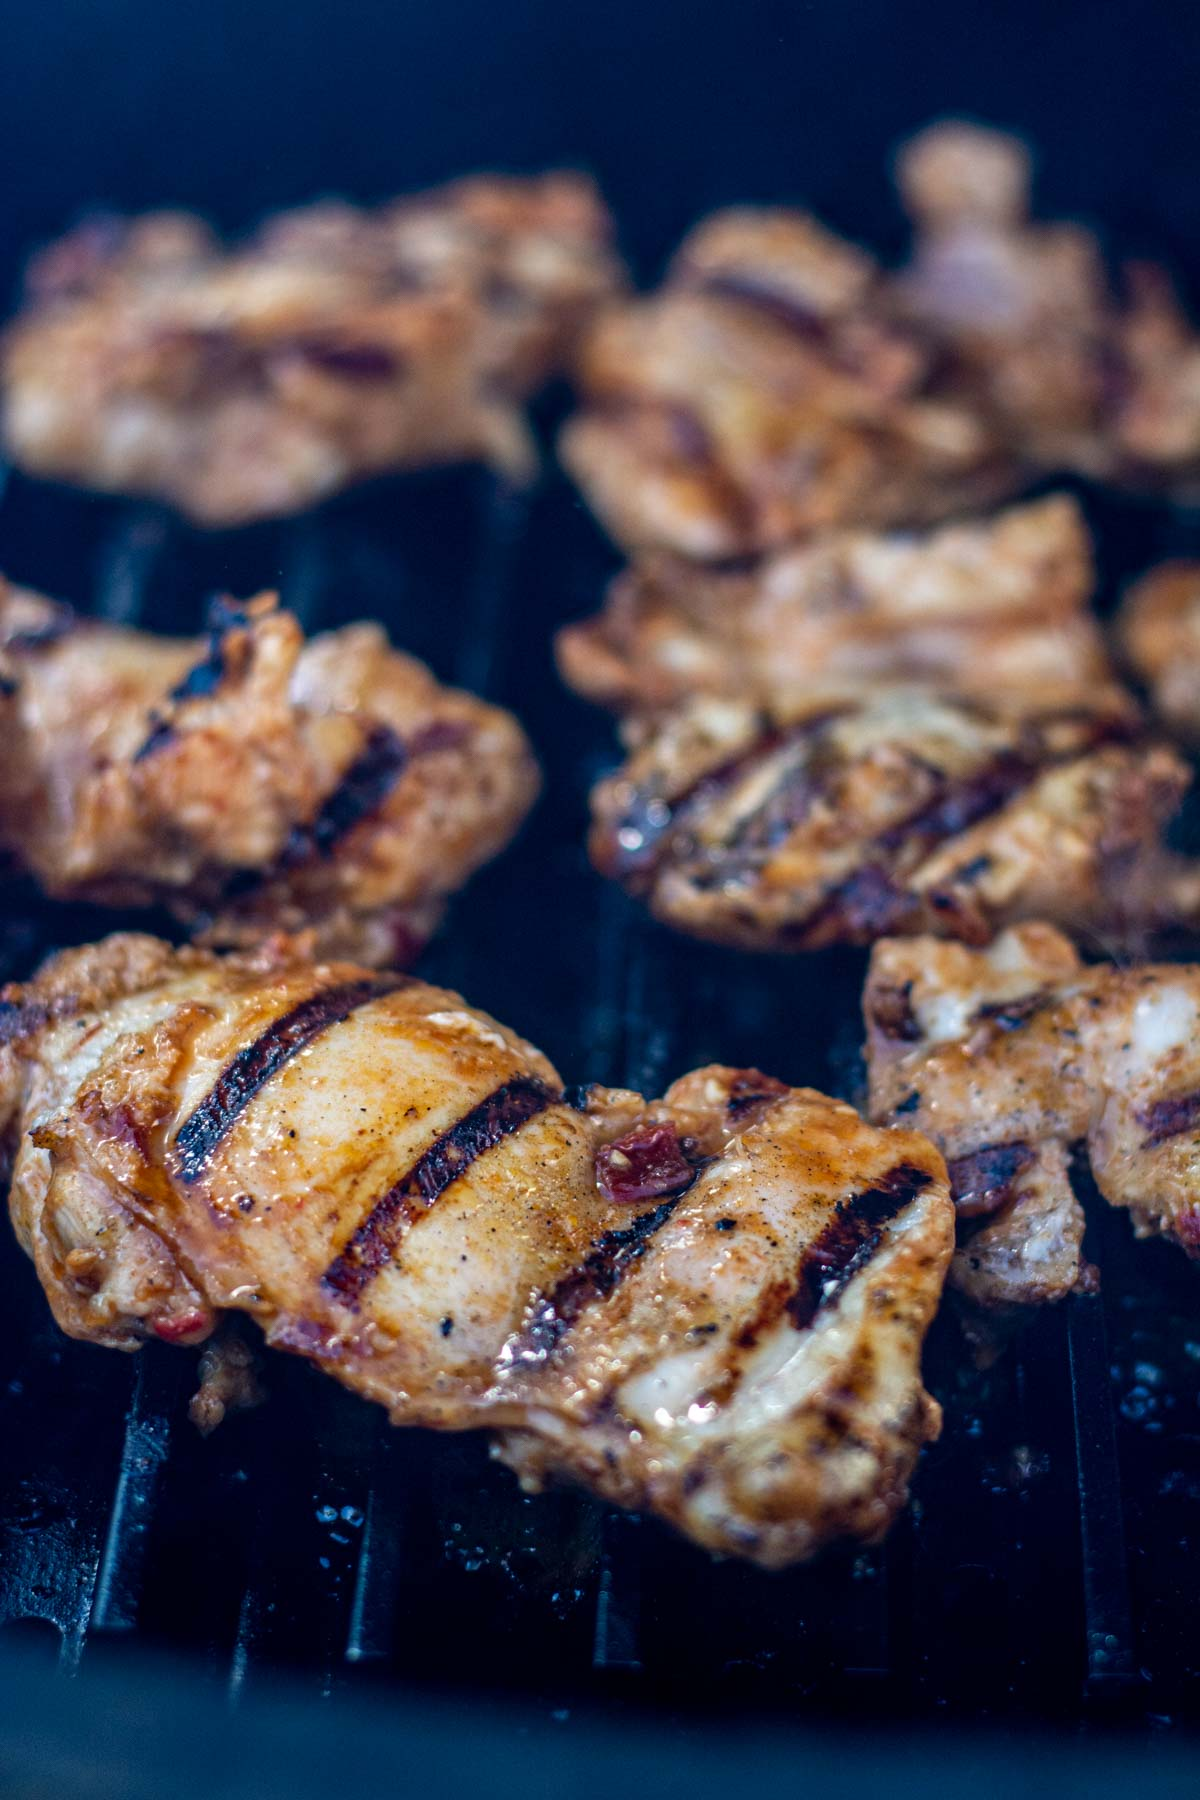 chicken thighs on the grill with distinctive sear marks.